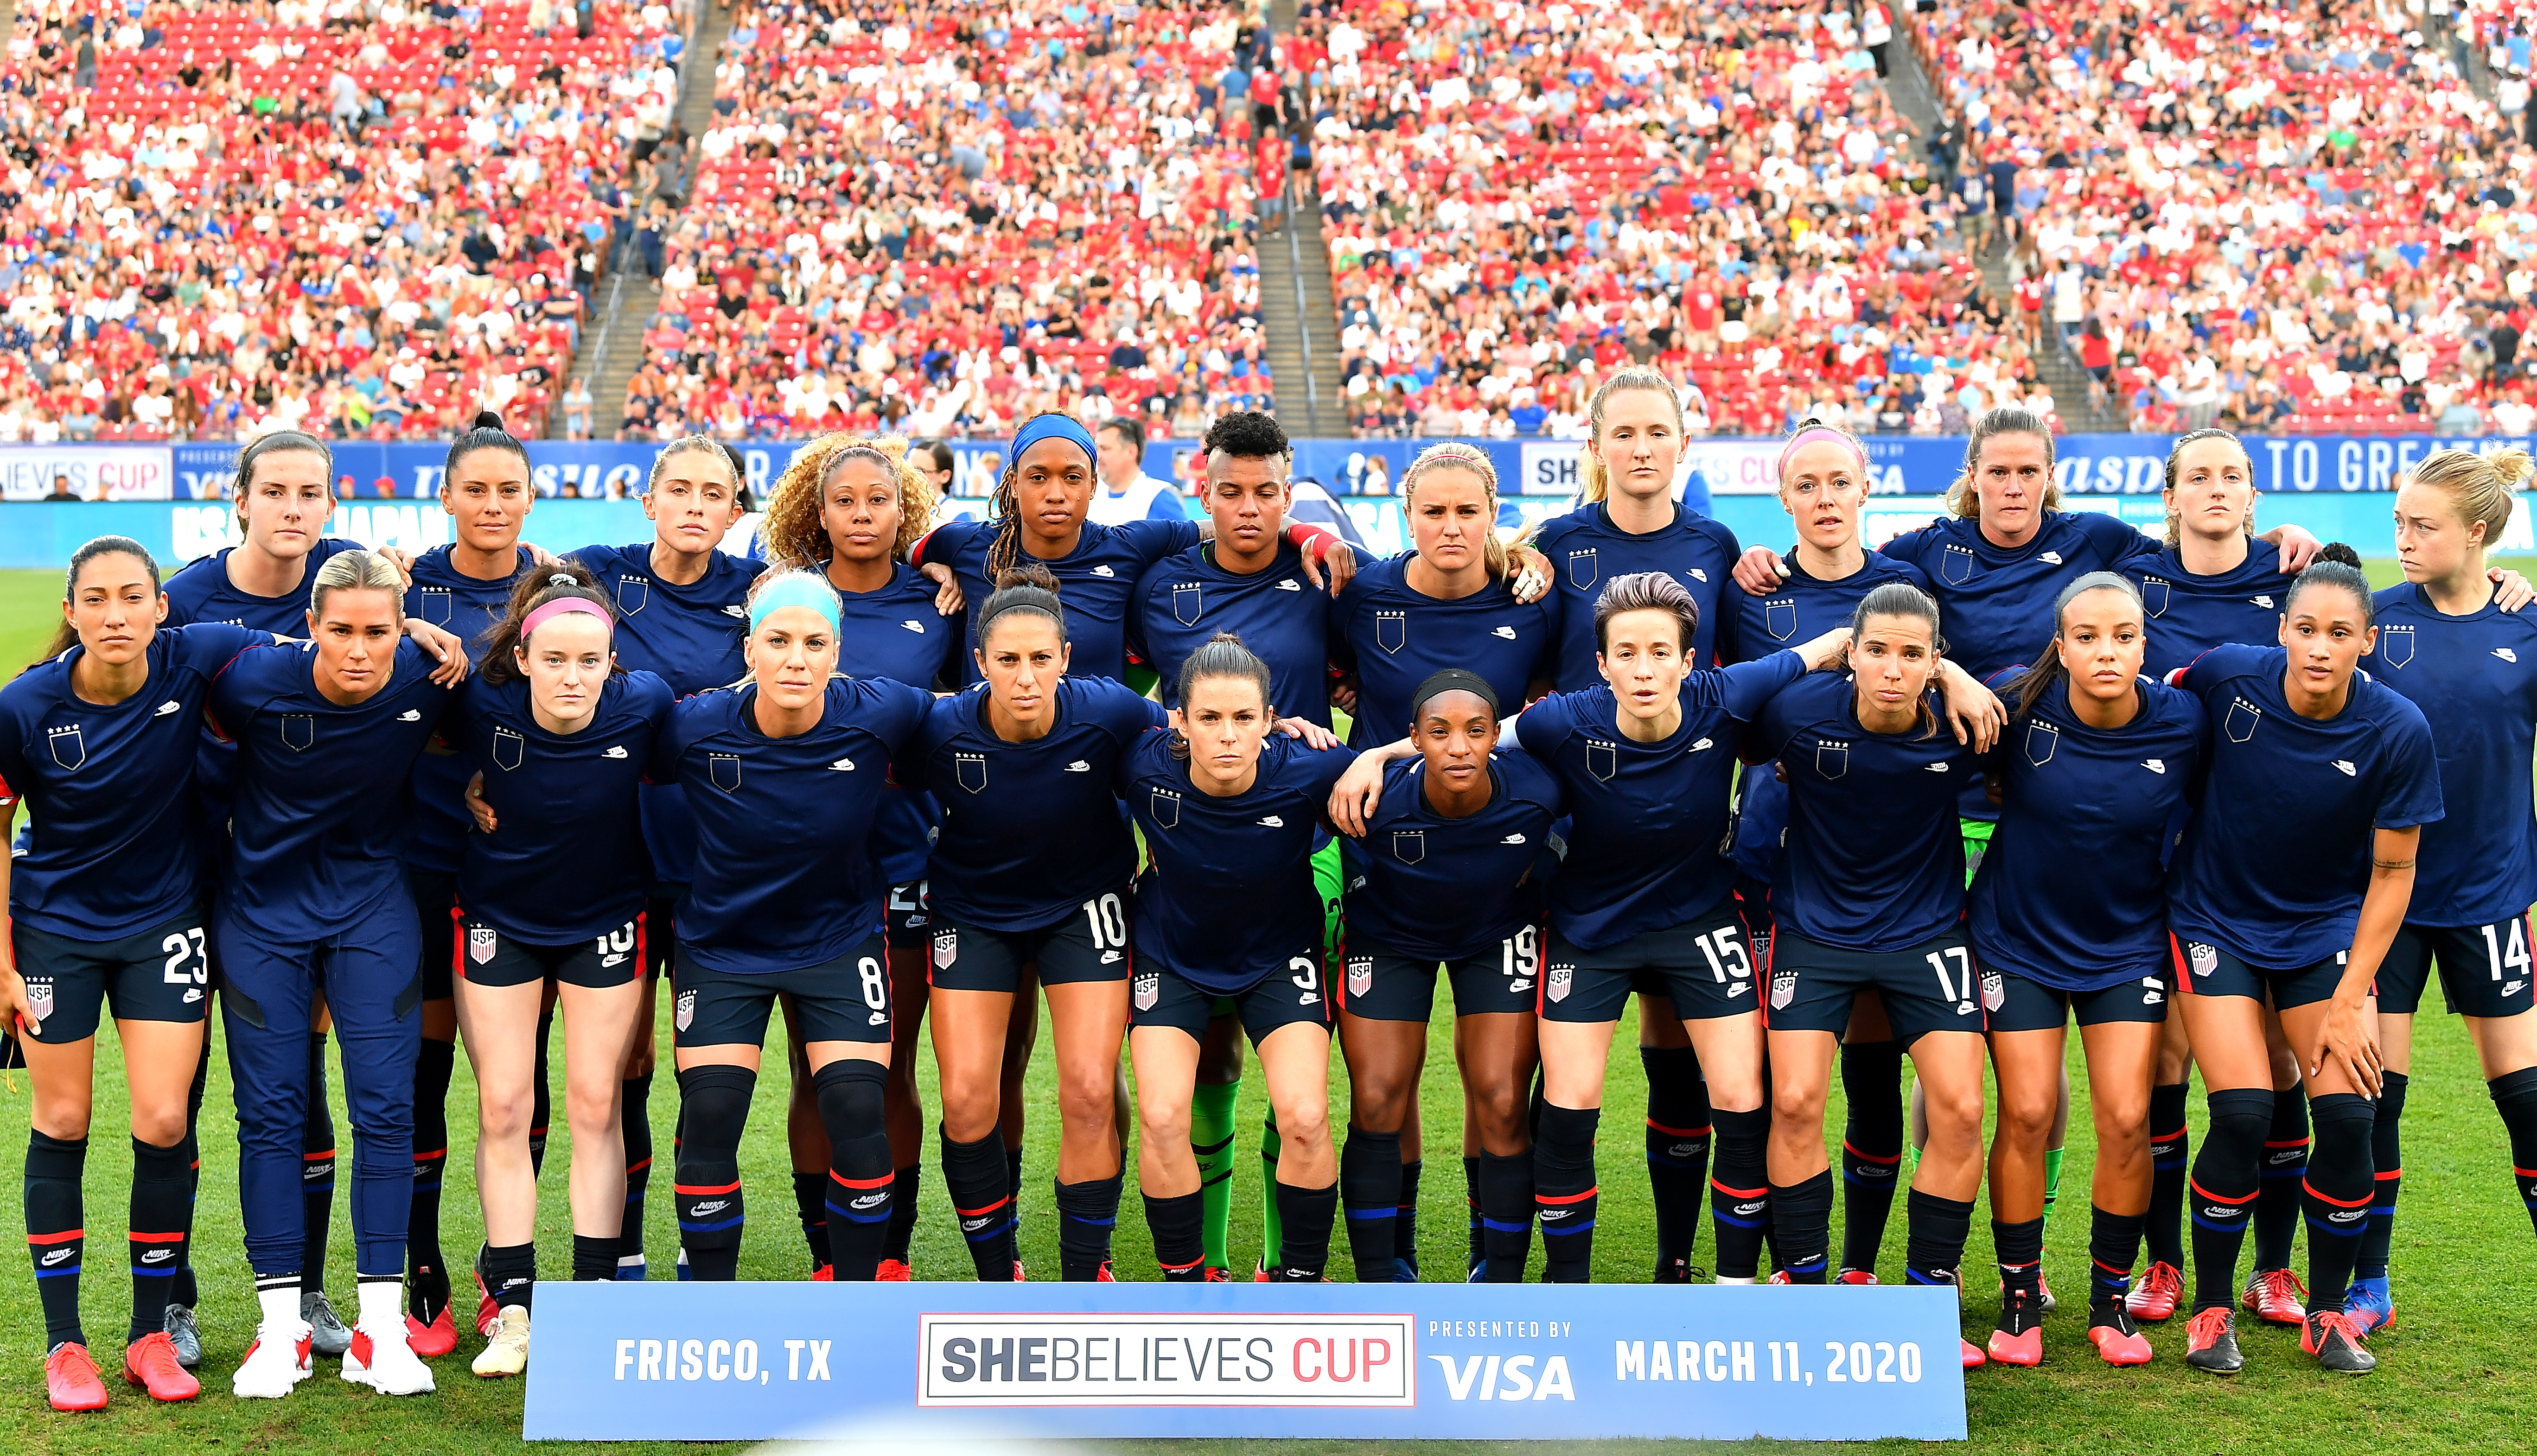 2020 Shebelieves Cup  - 美国v日本